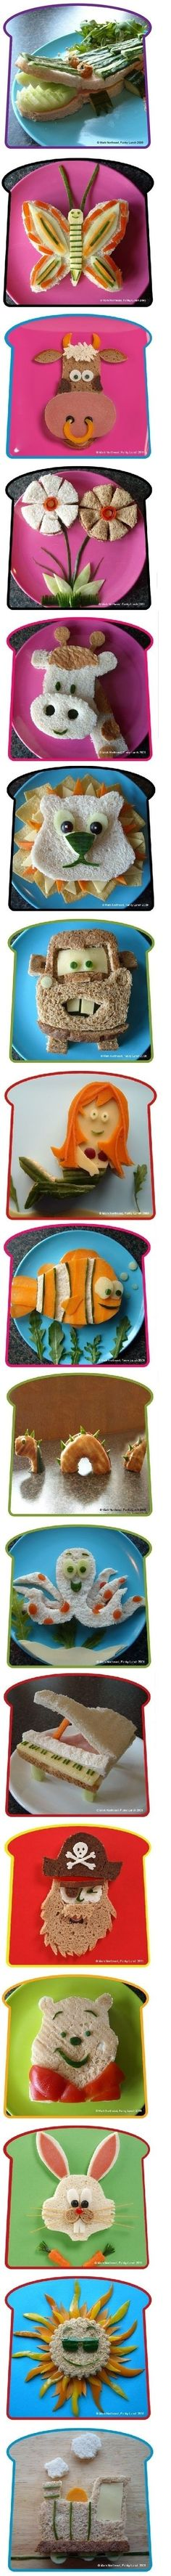 "How cute are these kiddo sandwiches! Do you make ""food art"" for your kids? Cut their sandwiches in cute shapes? How do you make mealtime fun? Cute Food, Good Food, Yummy Food, Toddler Meals, Kids Meals, Toddler Food, Boite A Lunch, Food Humor, Kid Friendly Meals"